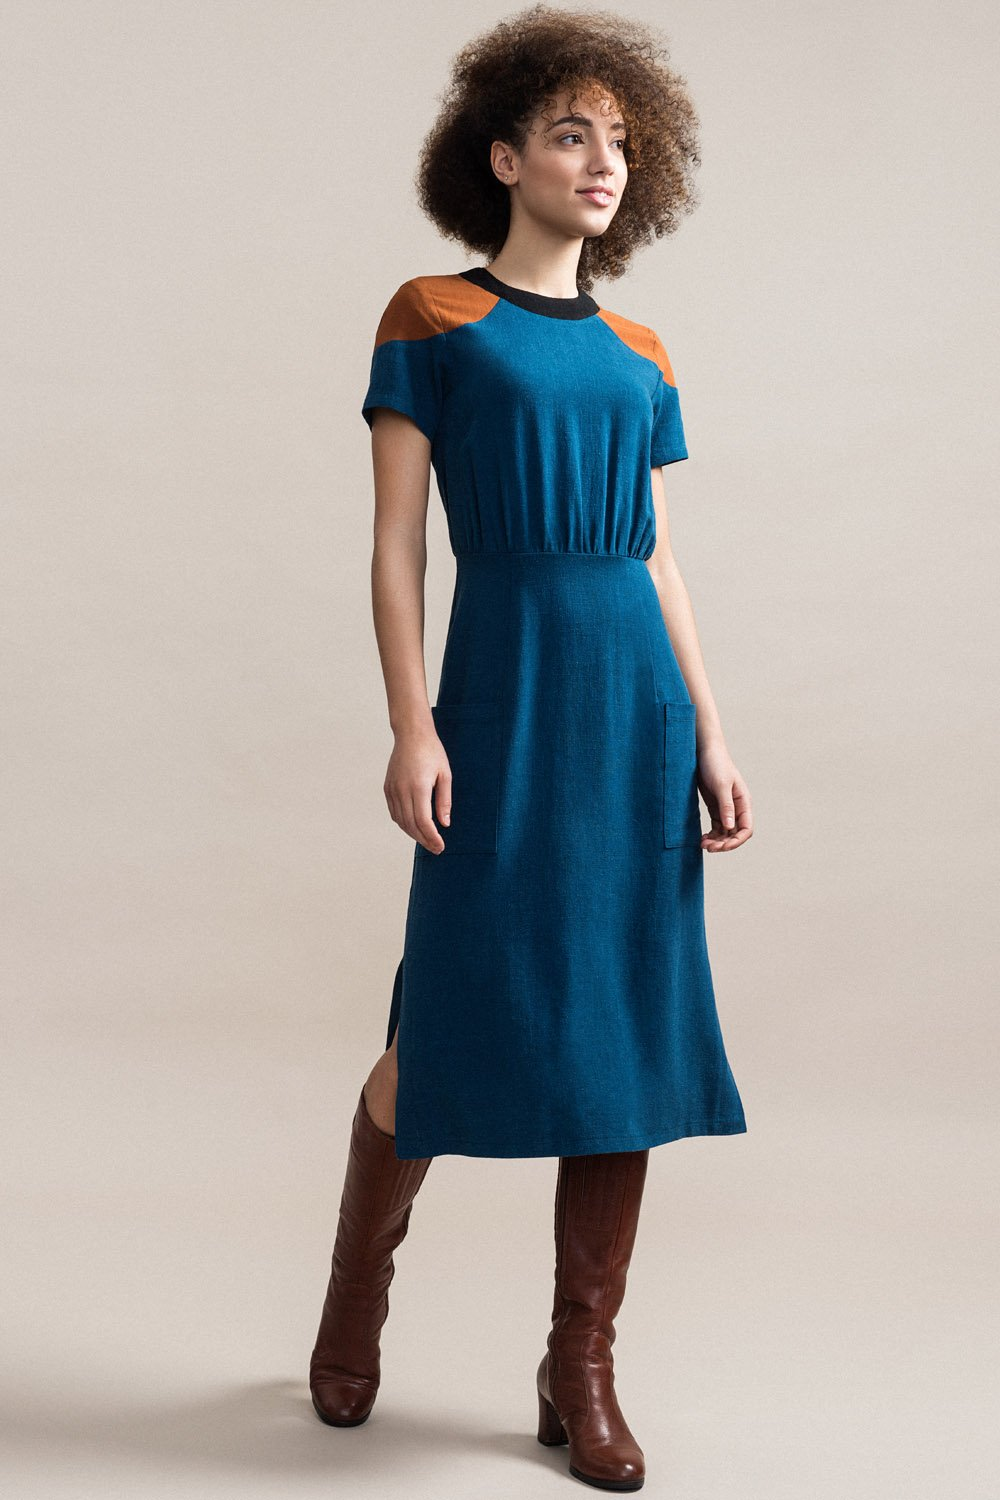 JENNIFER GLASGOW Cherish Dress in Teal FW2020/2021 (front view, full-length)